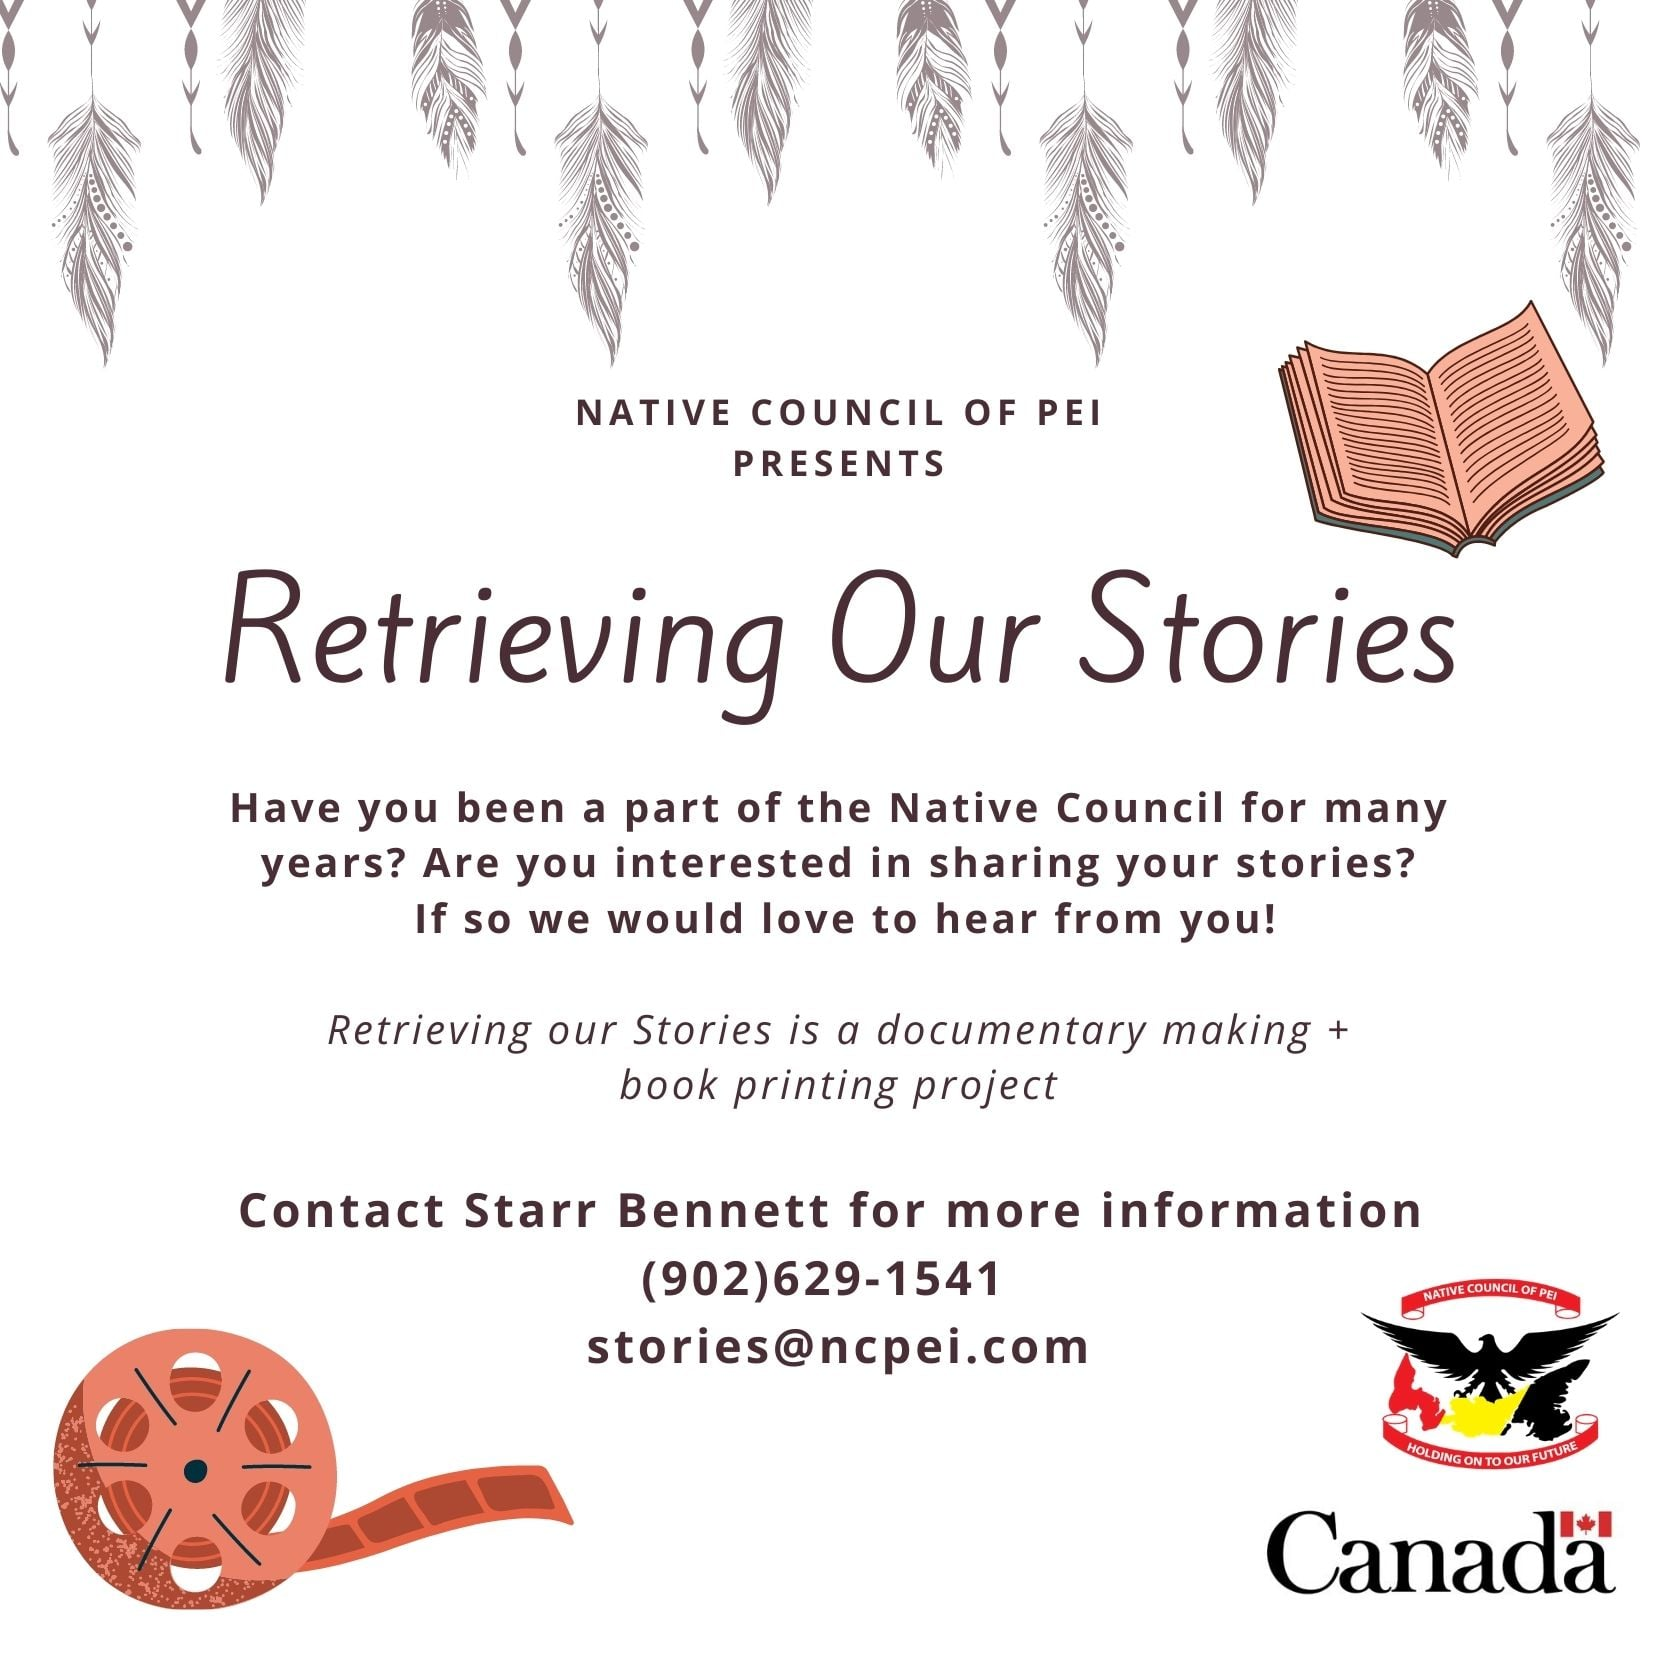 native council of pei - retrieving our stories